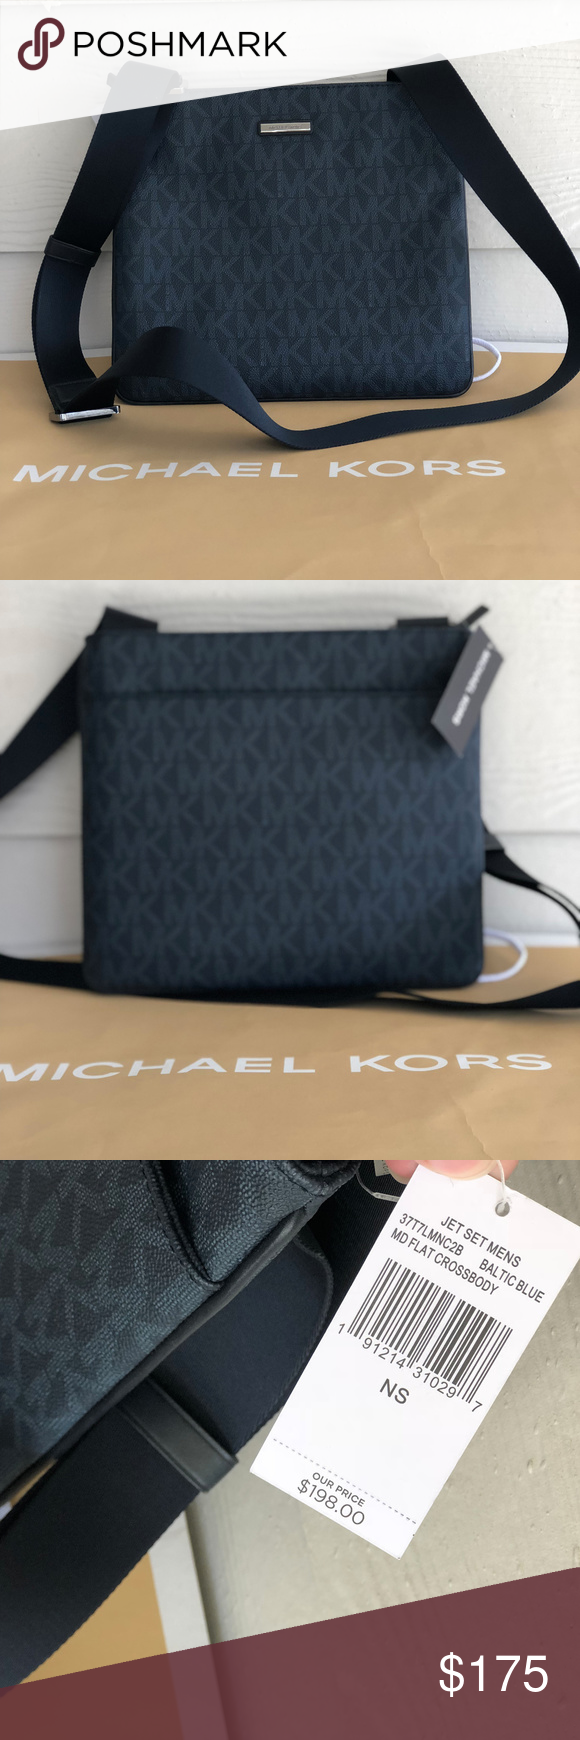 8ab1b5000471 Michael Kors Mens Jet Set Flat Blue Crossbody NWT 100% Authentic Michael  Kors Men s Jet